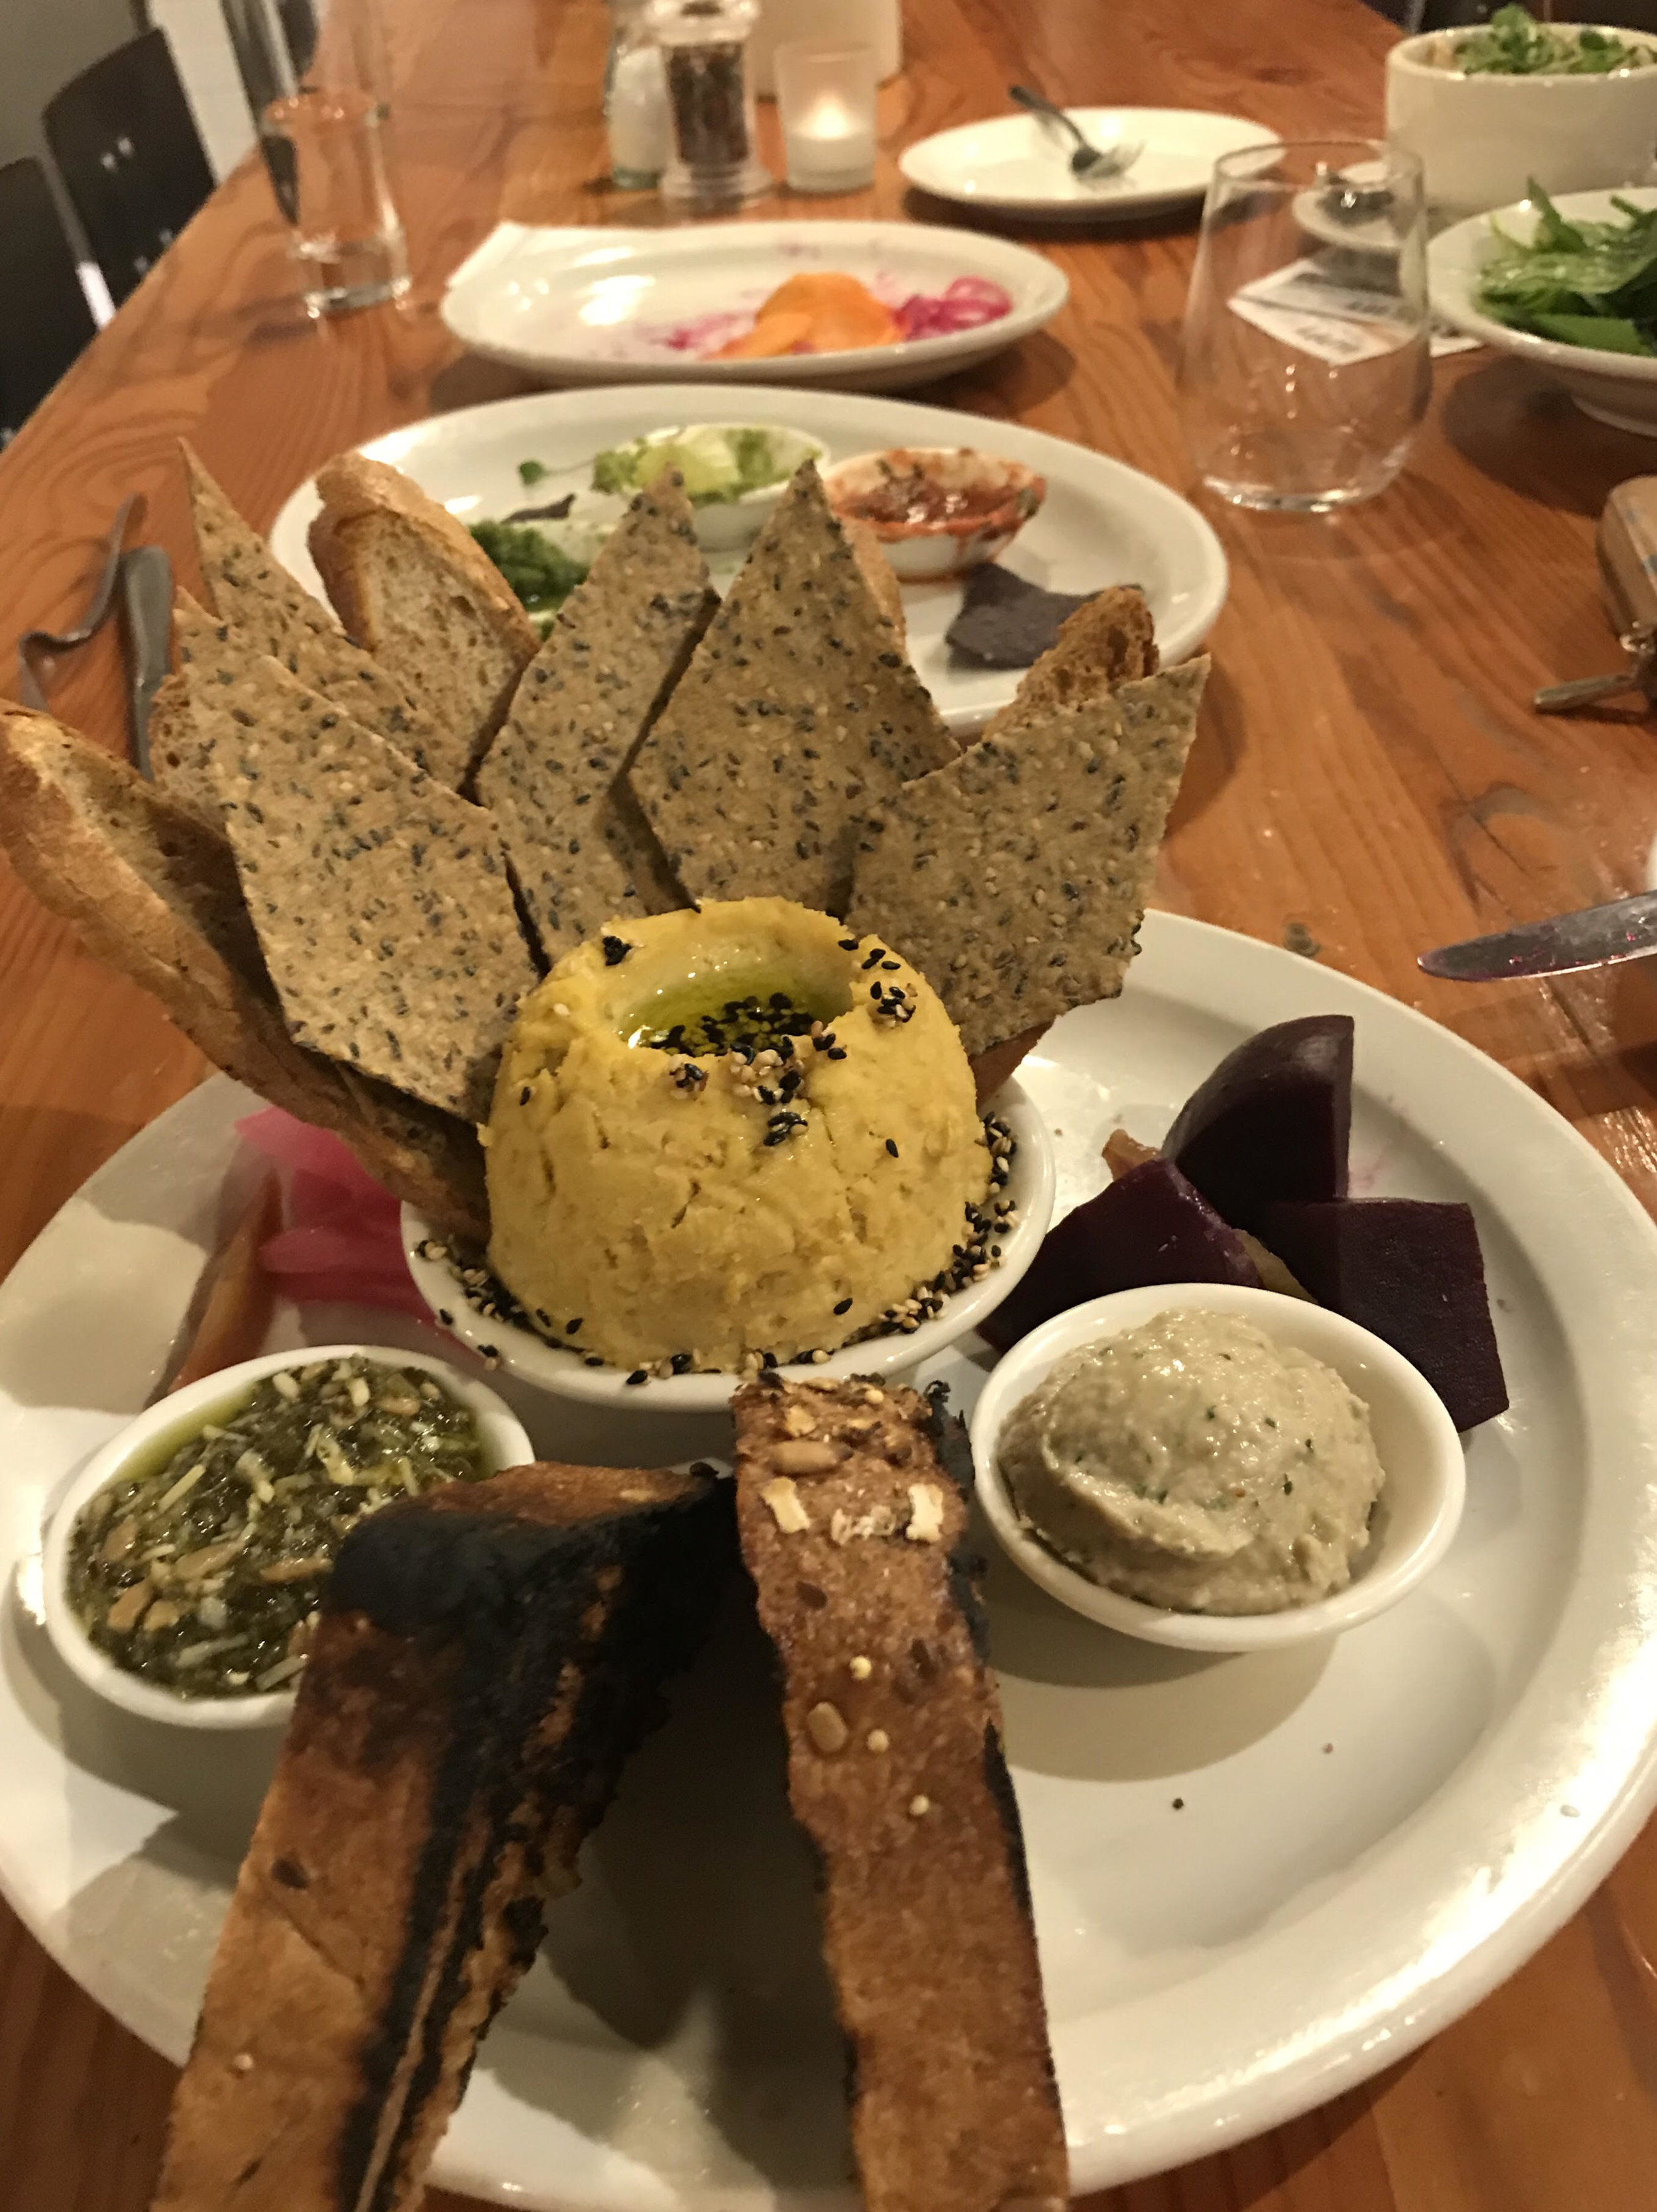 The Crostini and Cracker plate on the dinner menu features housemade bread and crackers, using flours milled by the company that nominated Birchwood Cafe,  B  aker's Field Flour & Bread !